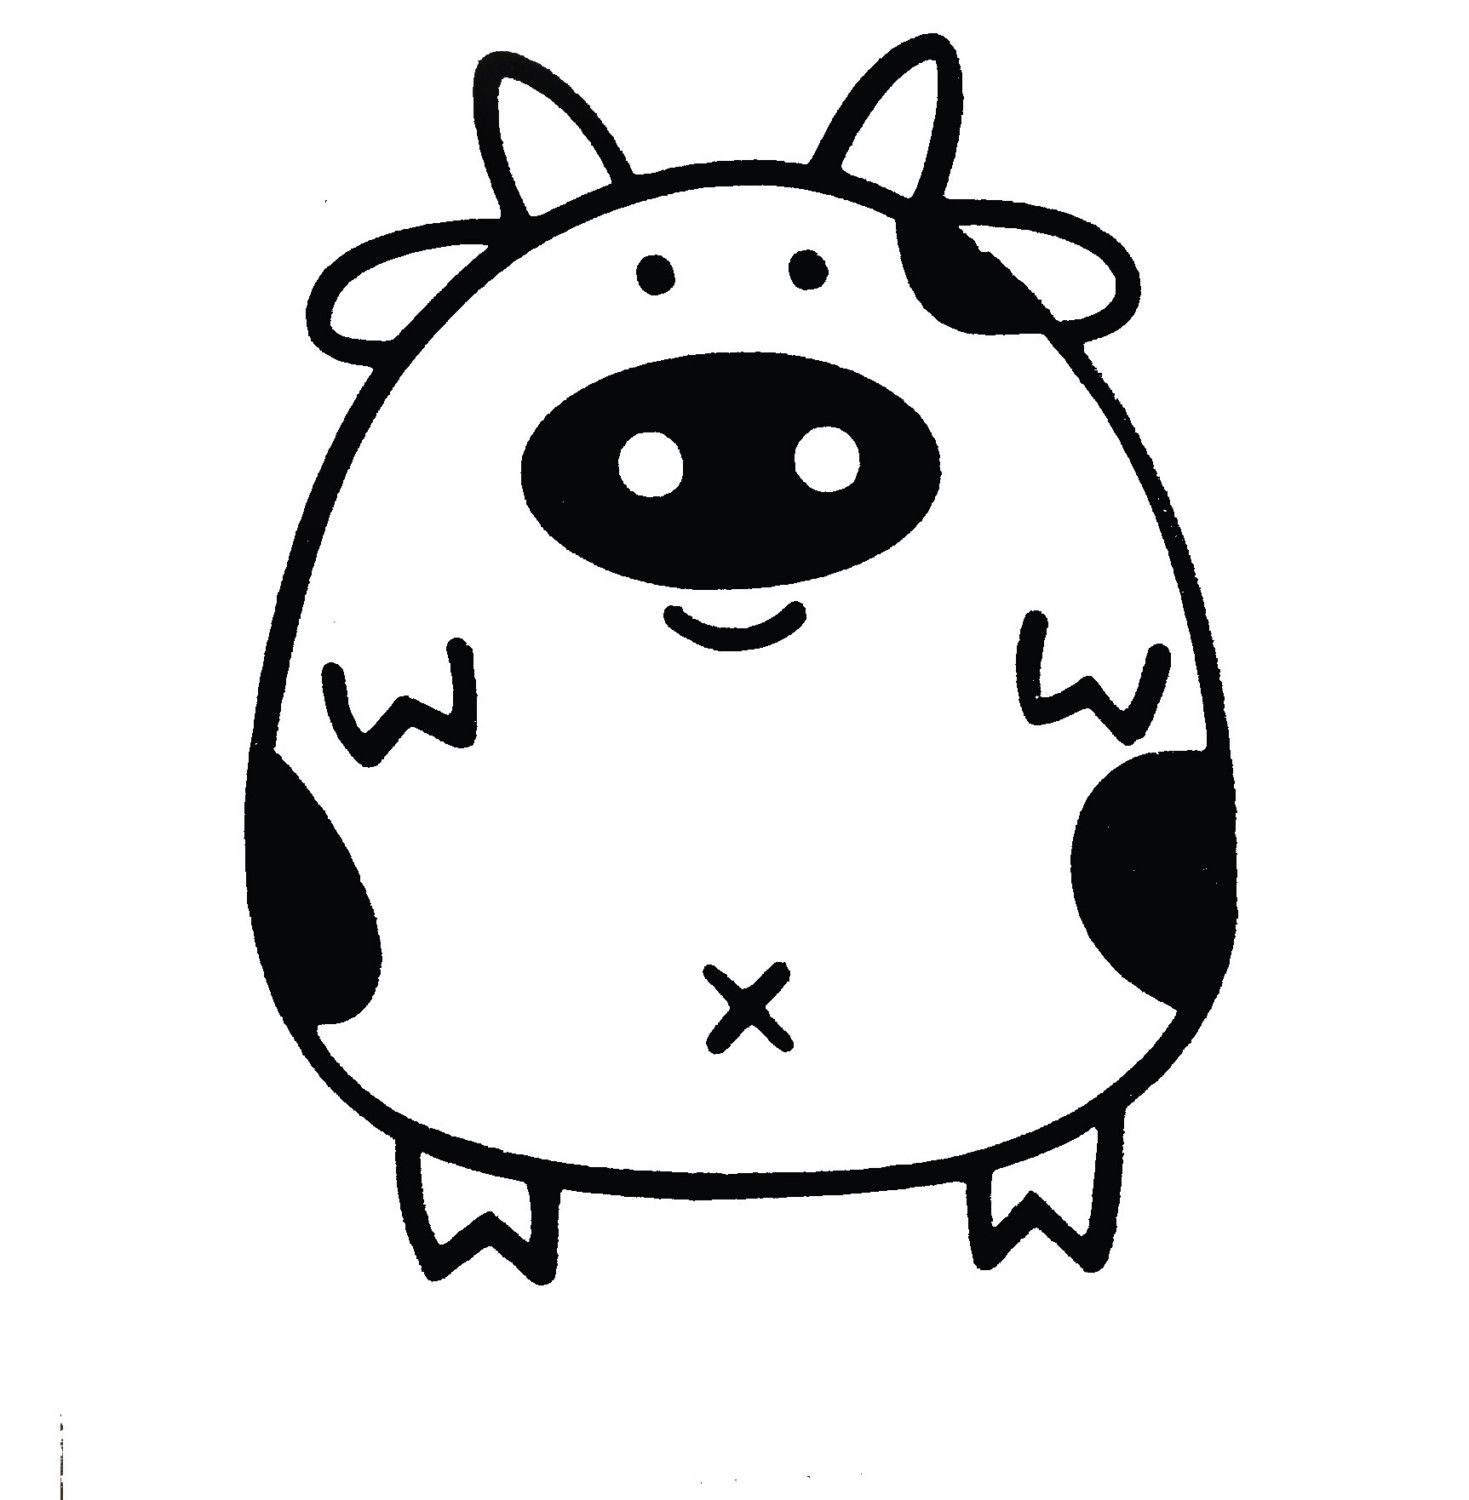 Adventure clipart cute Clipart Adorable Zone collection Cow